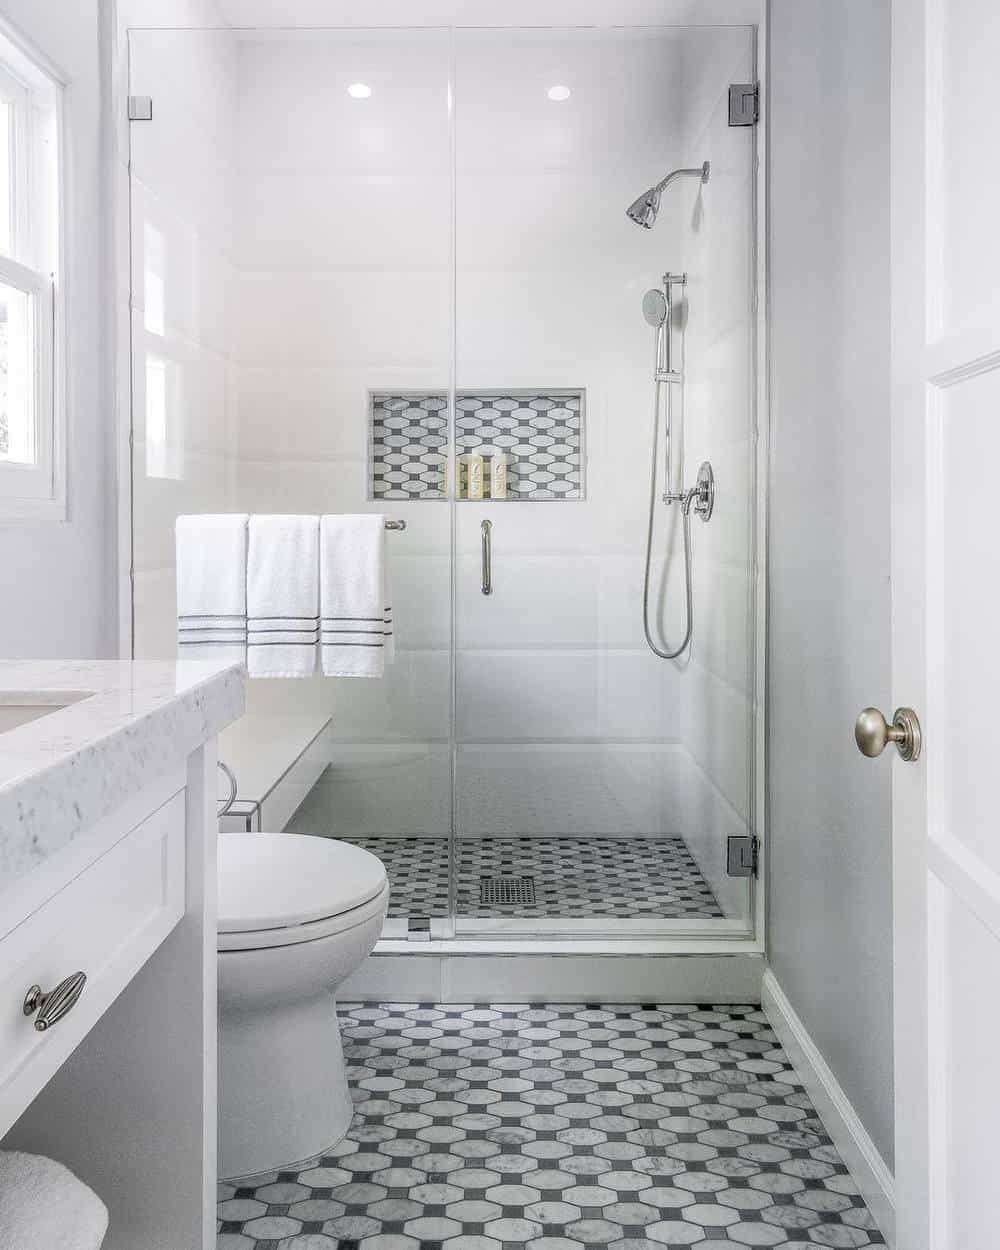 What Tiles Should You Have For Your Bathroom - Shower Flooring Tile Options